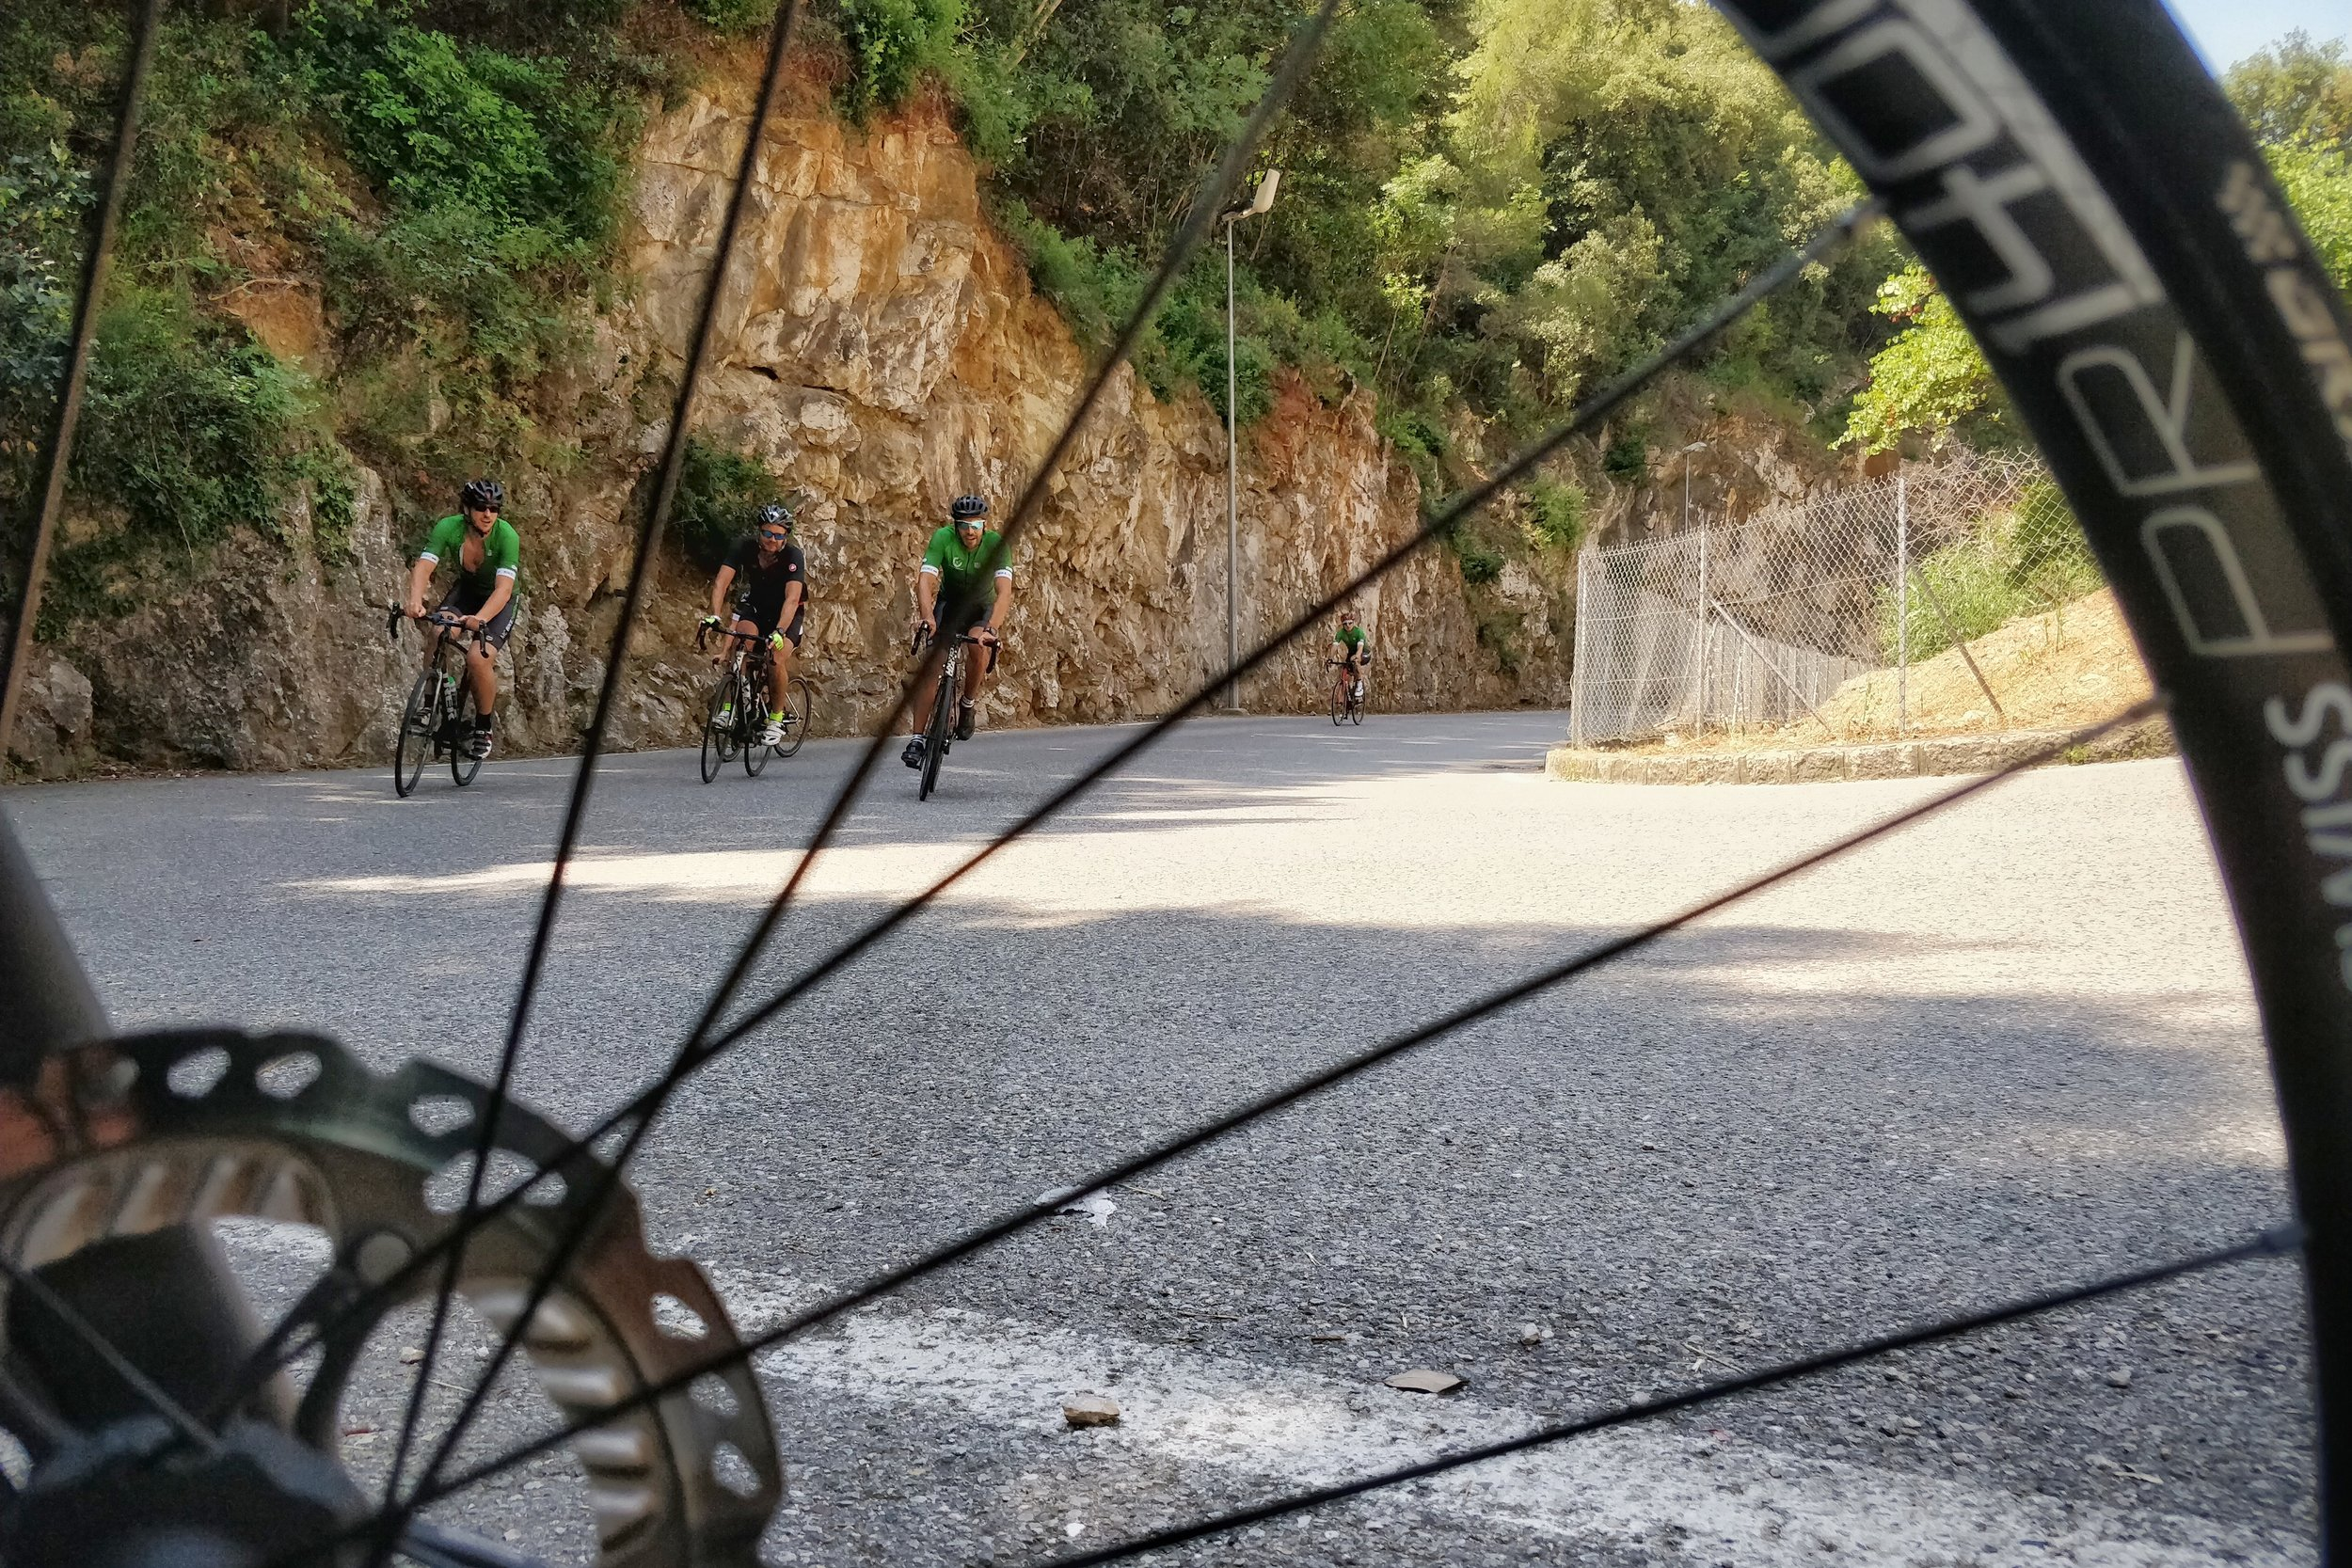 2018-07-05 MC Bike2Work Lunch Climb Ride Eze Copyright & Photo Ivan Blanco Vilar (14).jpeg